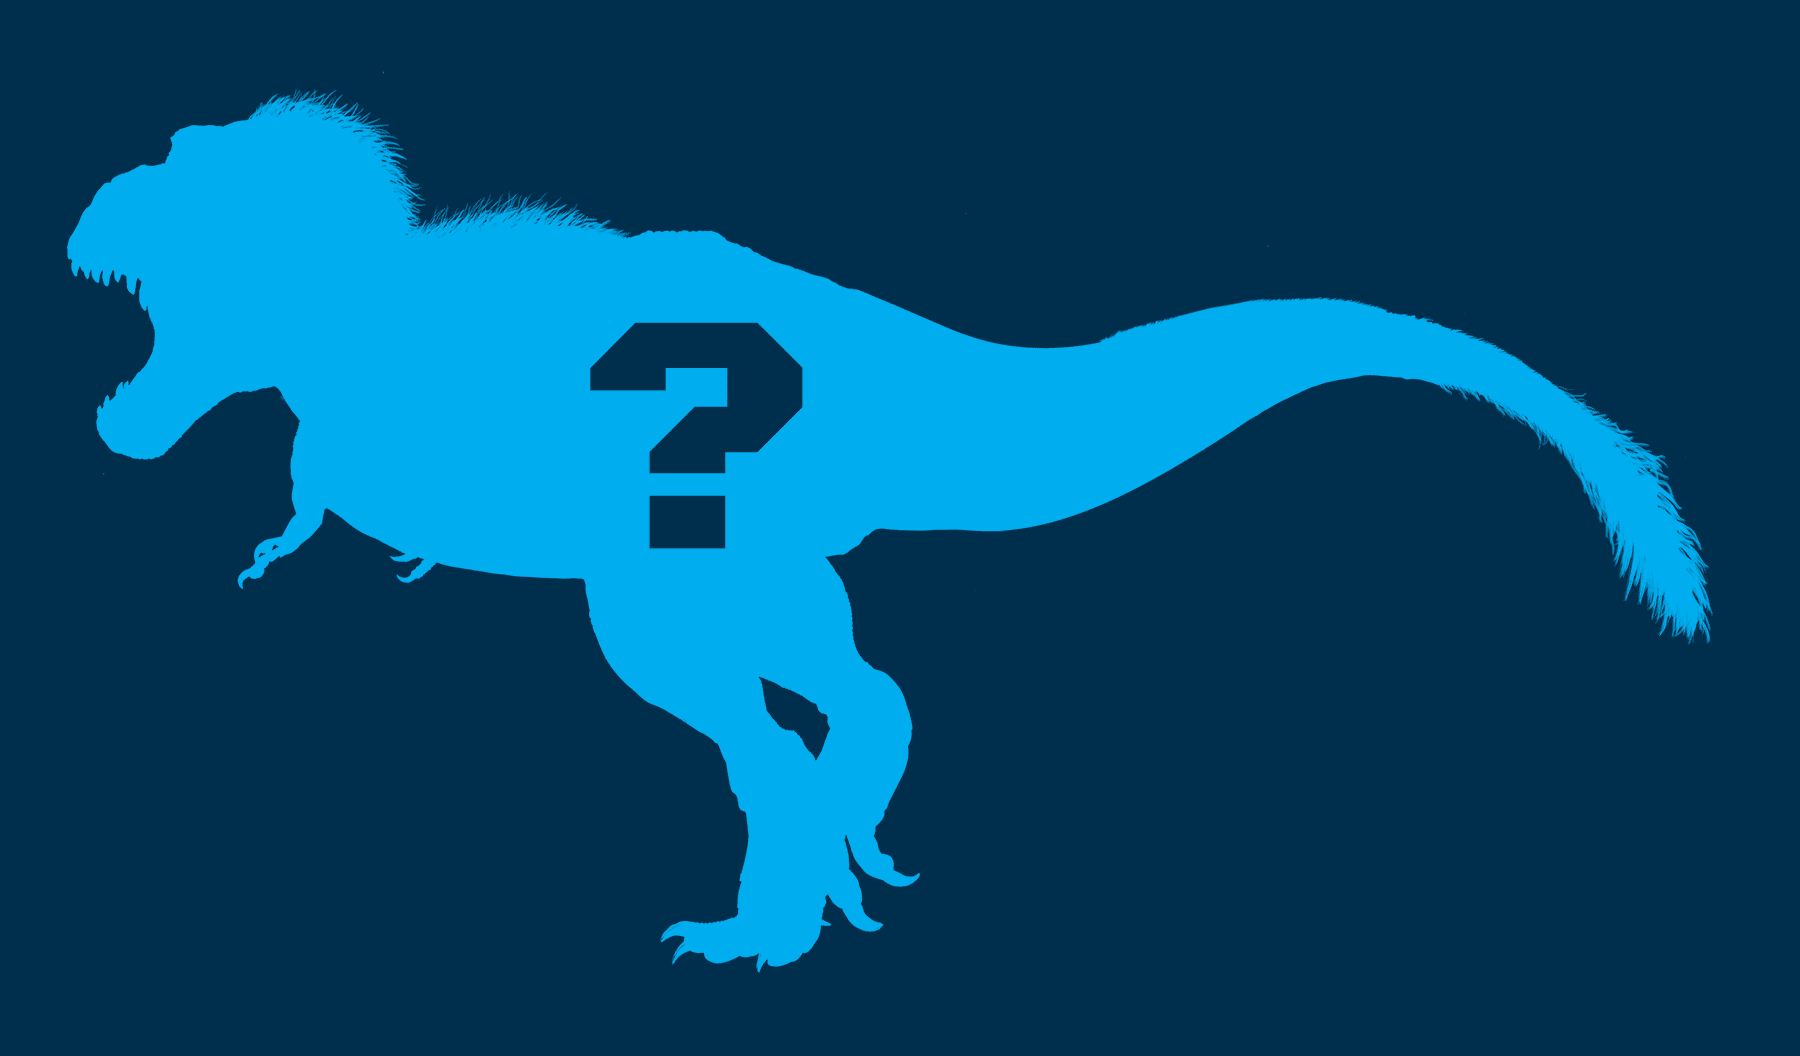 Silhouette of adult T. Rex with question mark